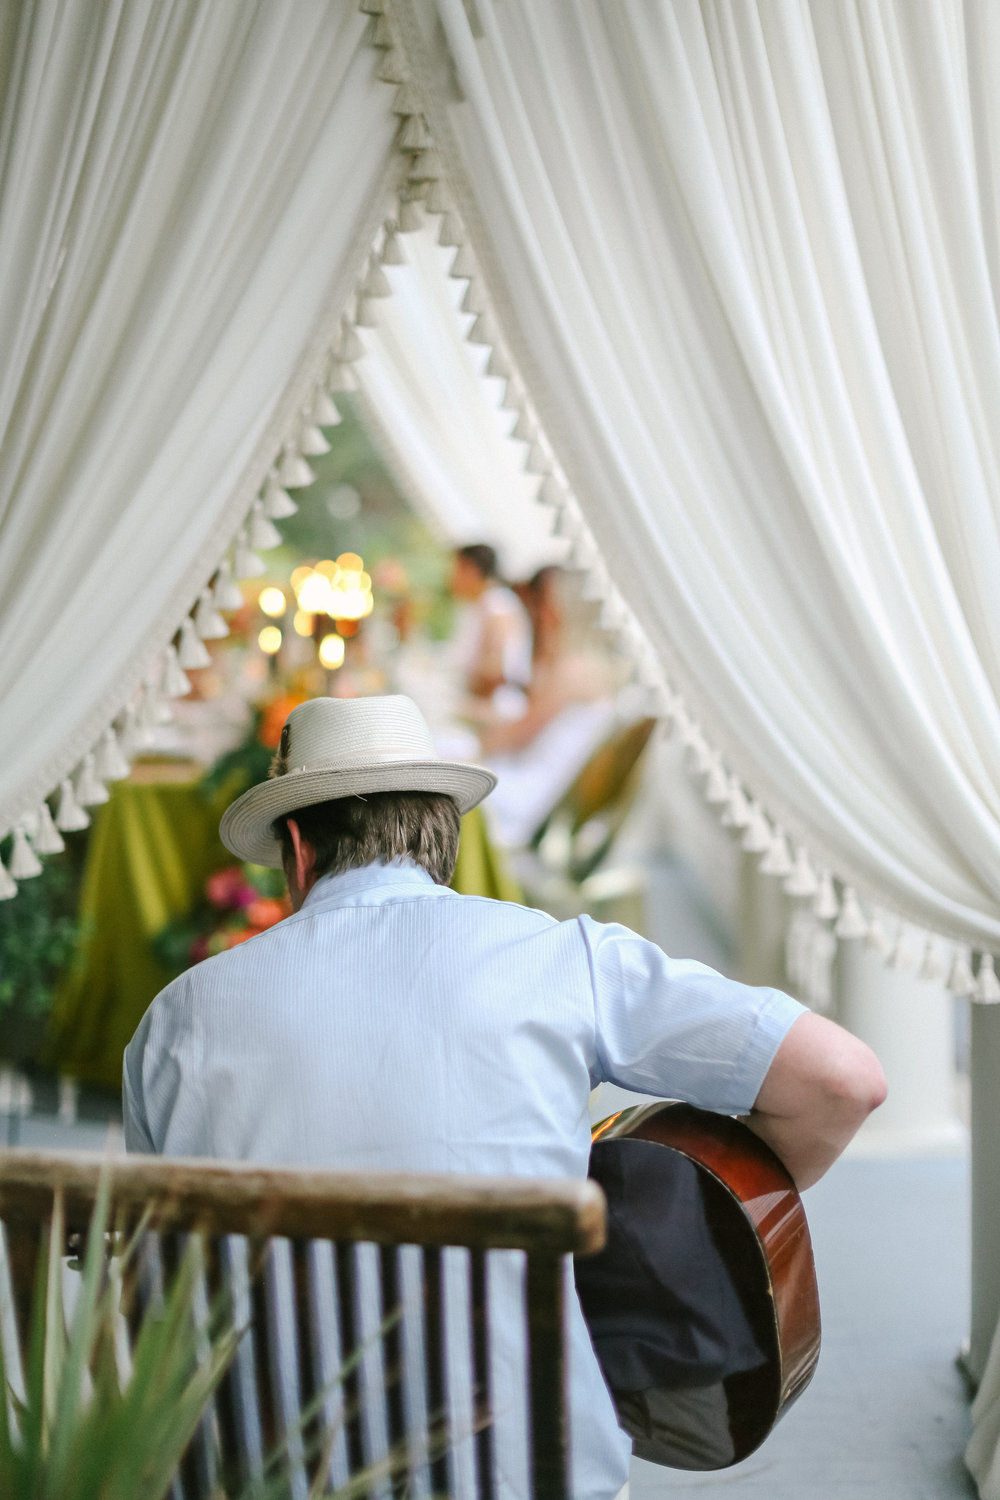 Charleston Porch Party, Events by Reagan, Dinner Party, Tropical Party, Charleston Event Planner , Musician, Guitarist